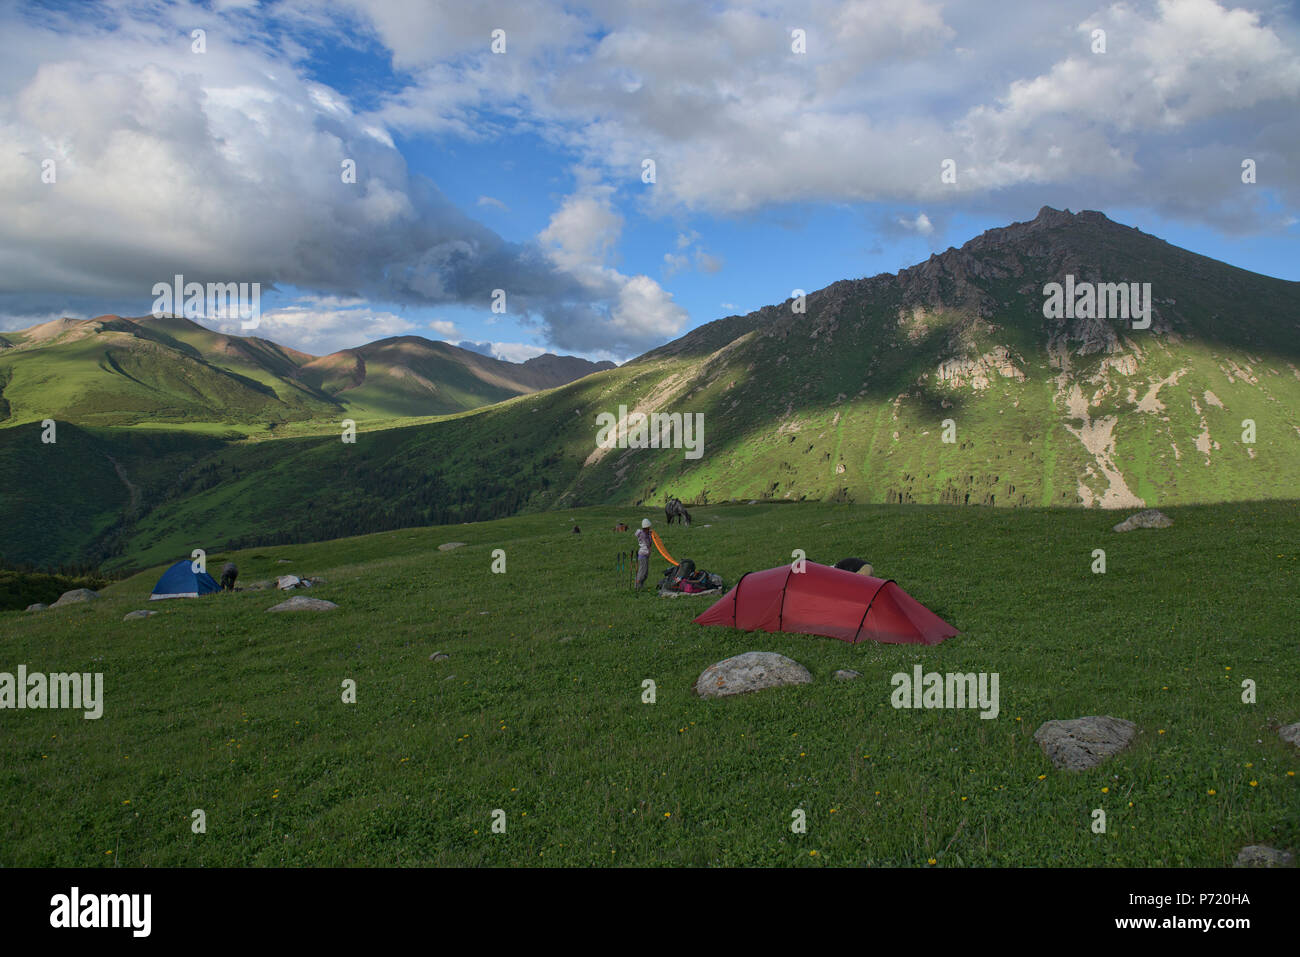 High alpine camp on the Keskenkija Trek, Jyrgalan, Kyrgyzstan - Stock Image